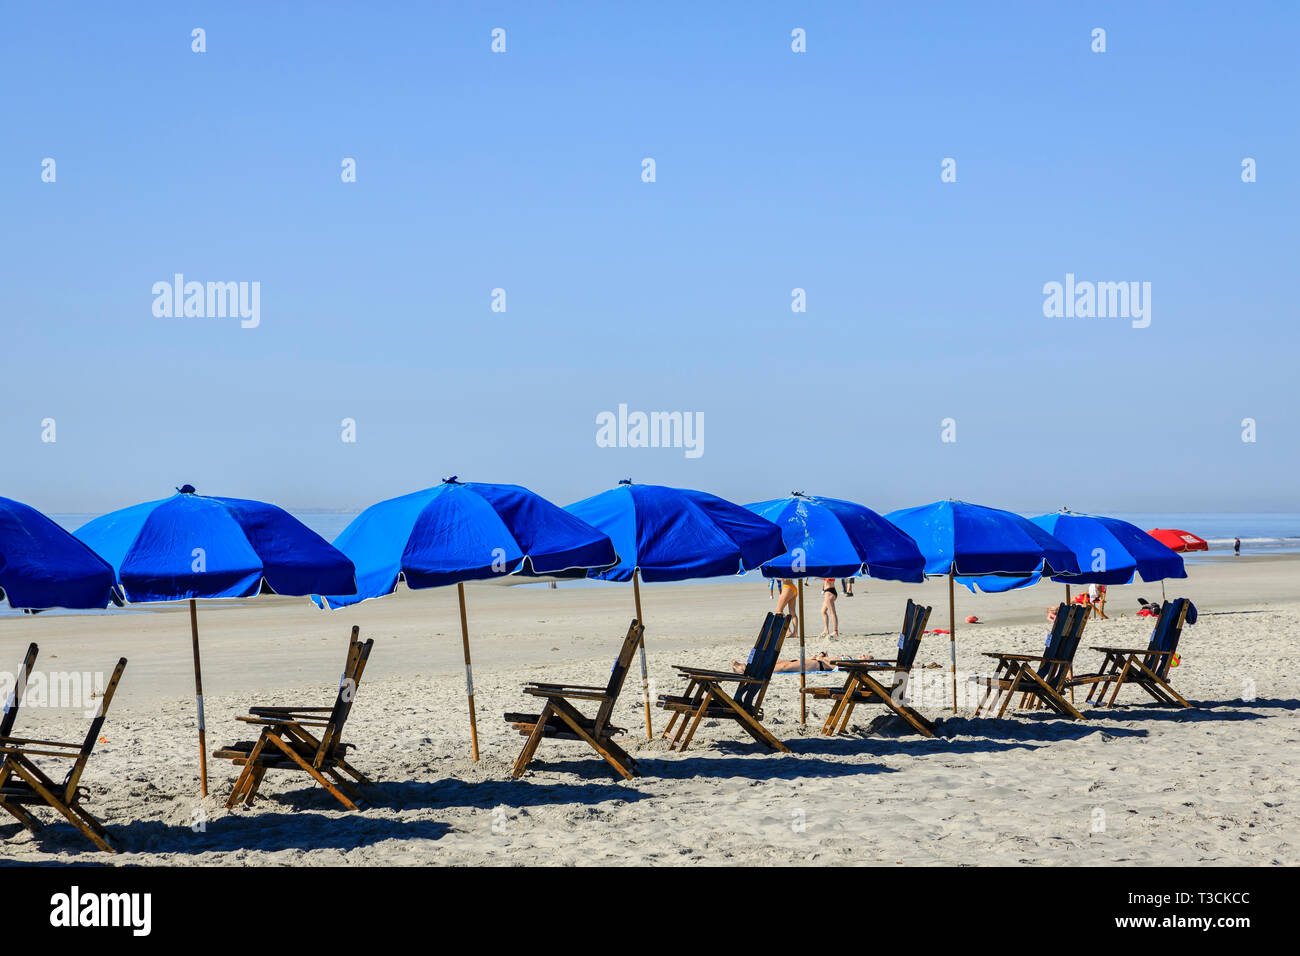 A group of blue umbrellas and beach chairs on an ocean beach. - Stock Image